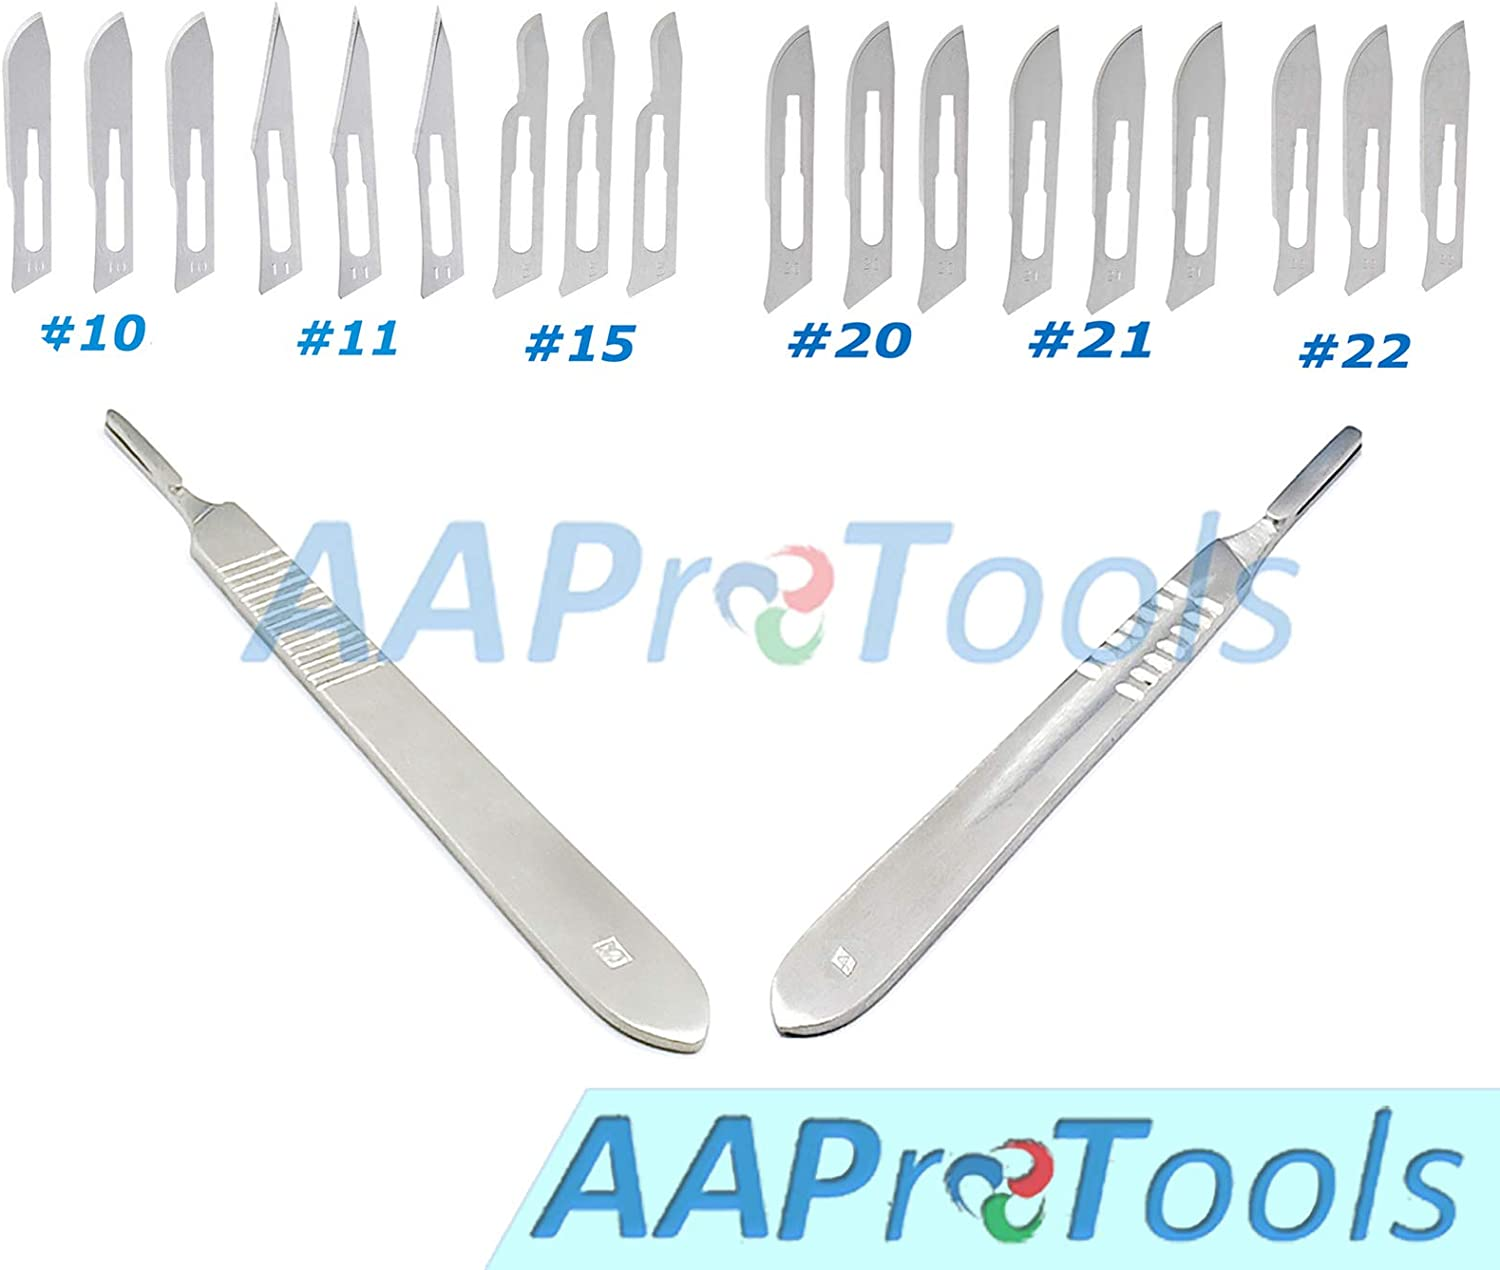 Medic//surgi Instruments//equipment Crafts AAProTools 120 Sterile Scalpel Handle Blades #10#11#15#20# 21#22 1 Free Scalpel Handle #3 And #4 Suitable For Dermaplaning